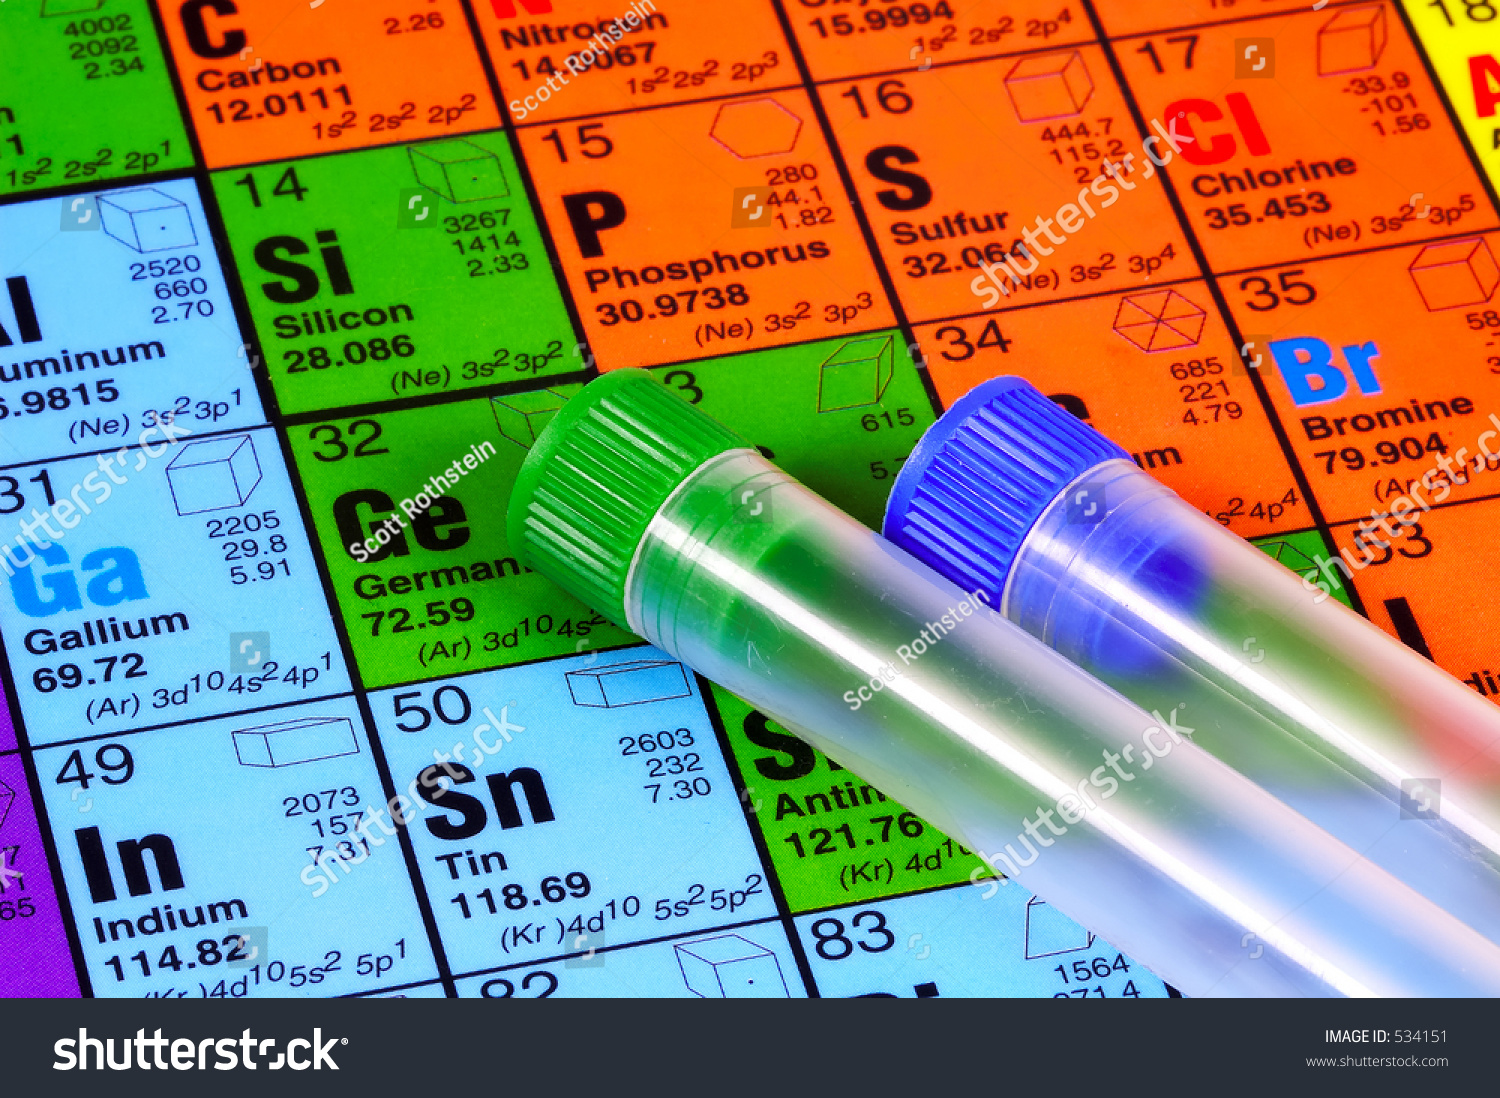 Periodic table test tubes stock photo download now 534151 periodic table and test tubes urtaz Images